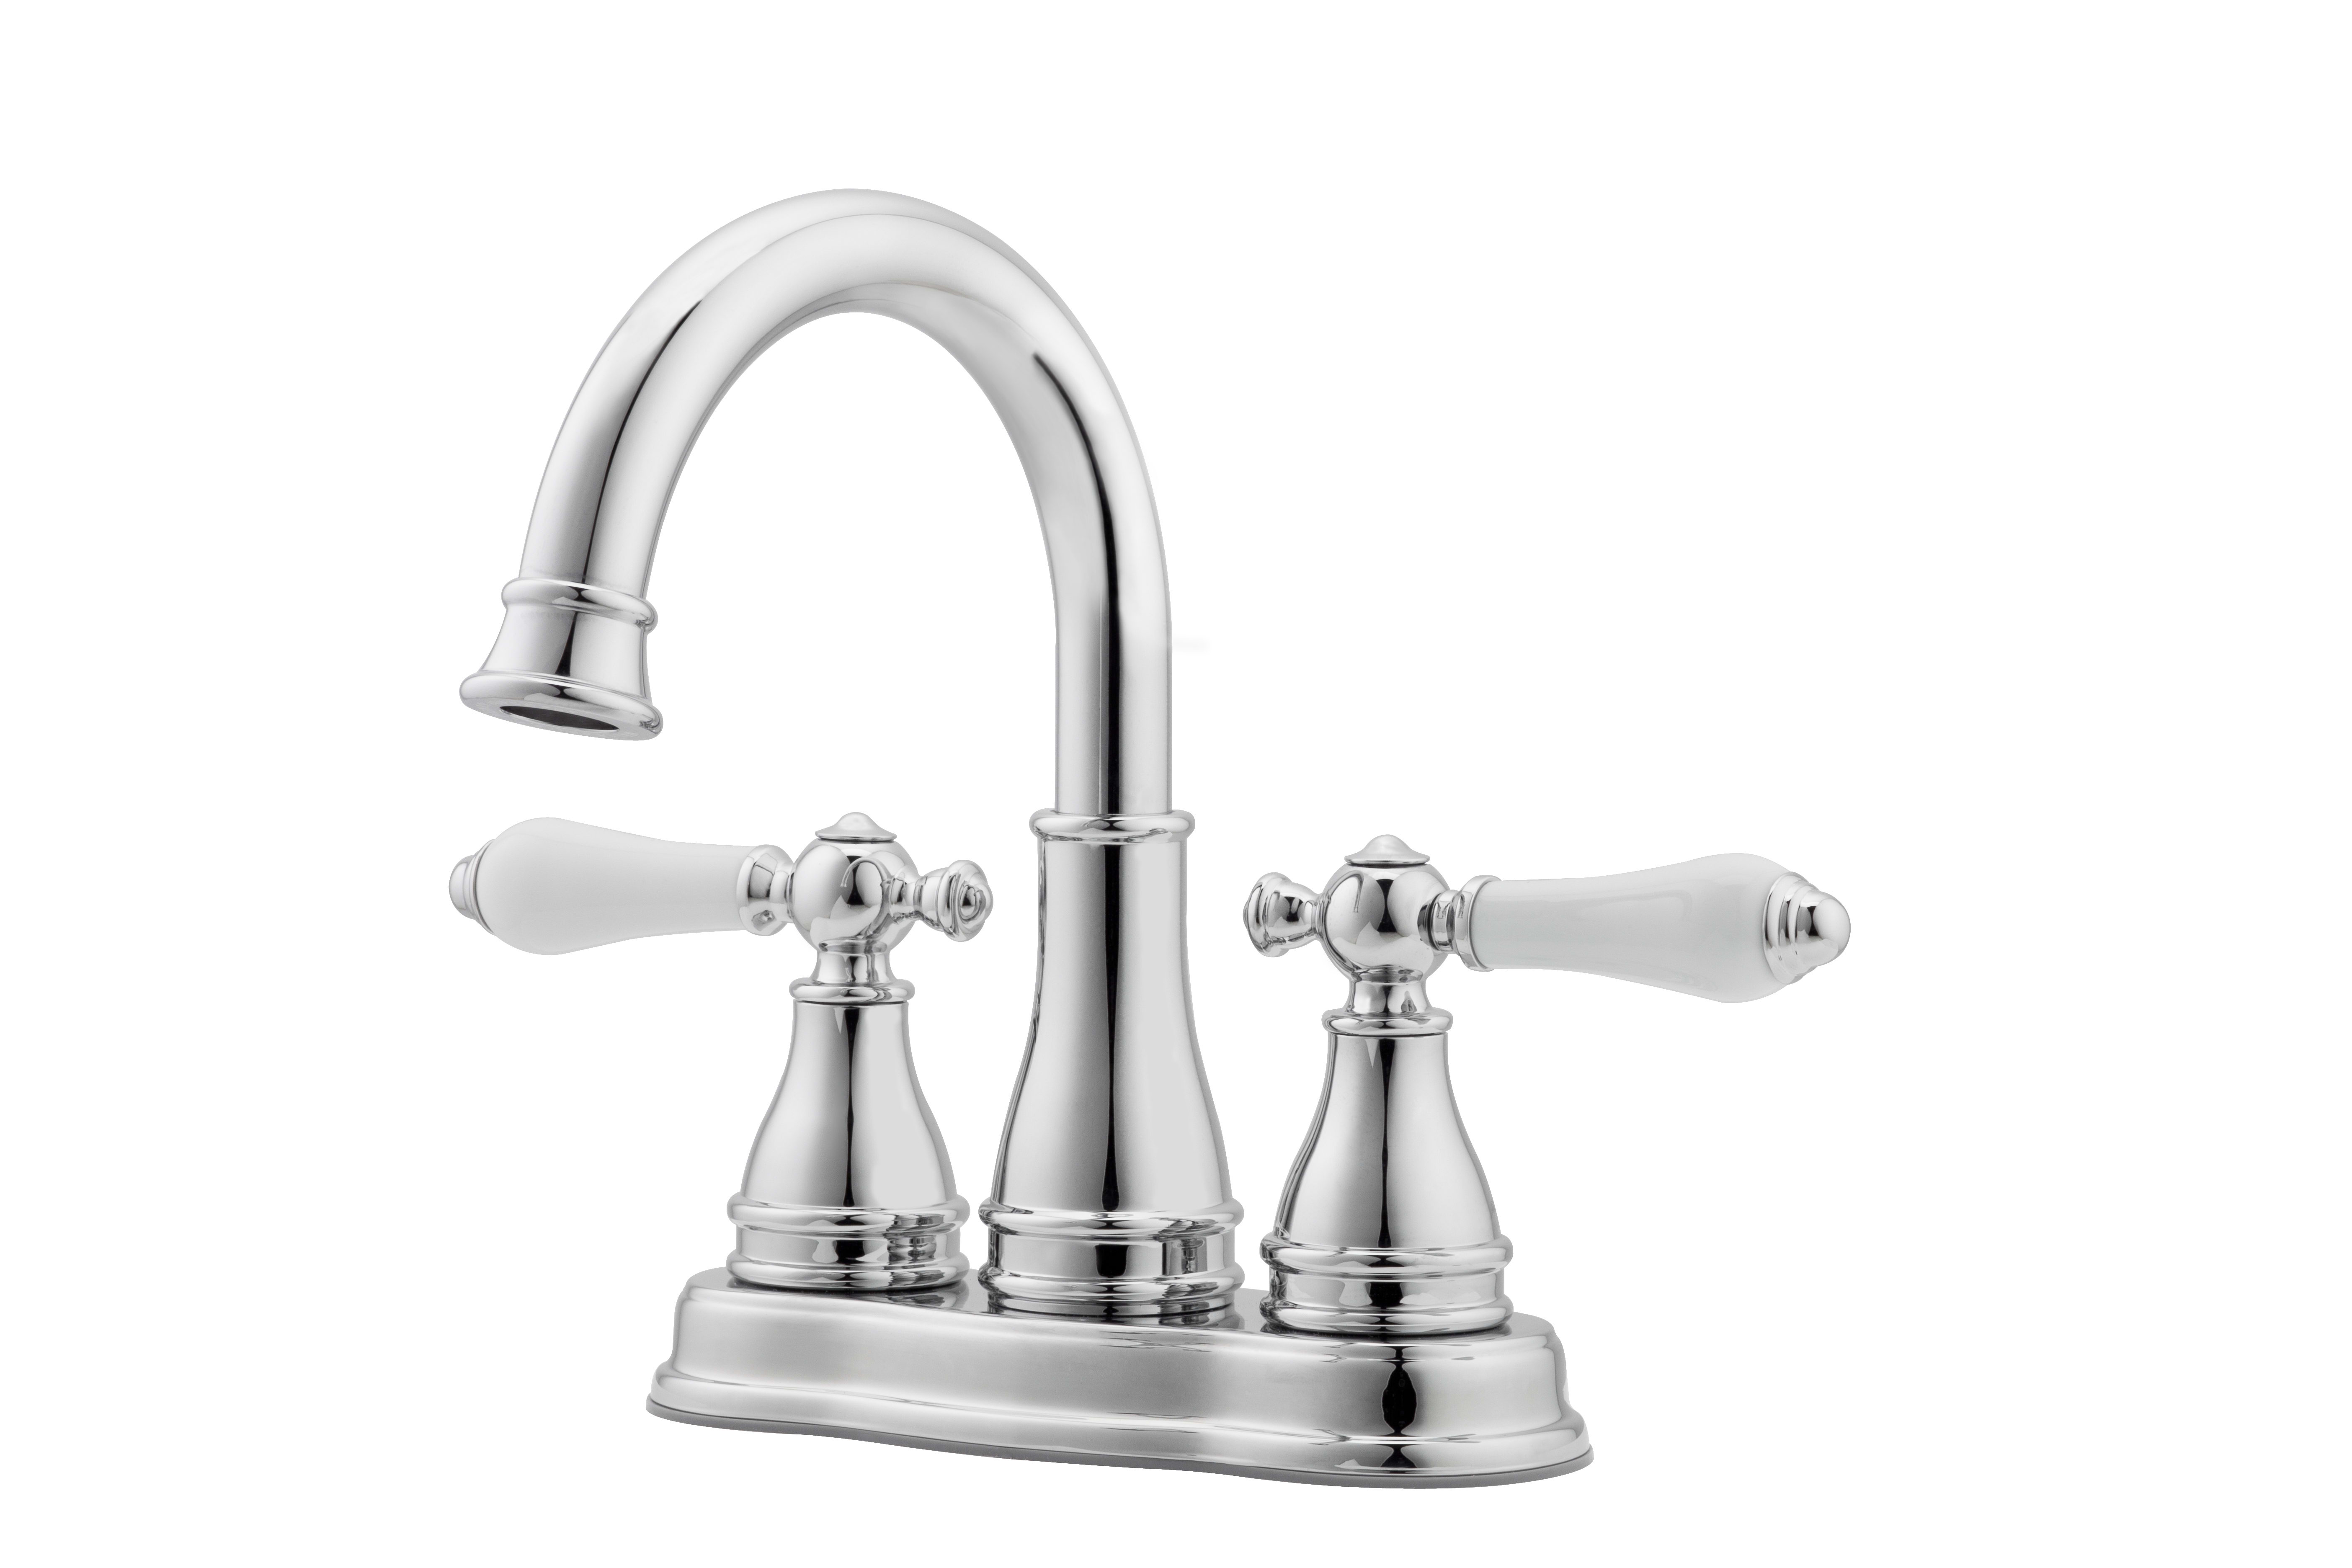 replacement tub kitchen new pfister inspirational best repair sink sprayer hose other of faucet price parts